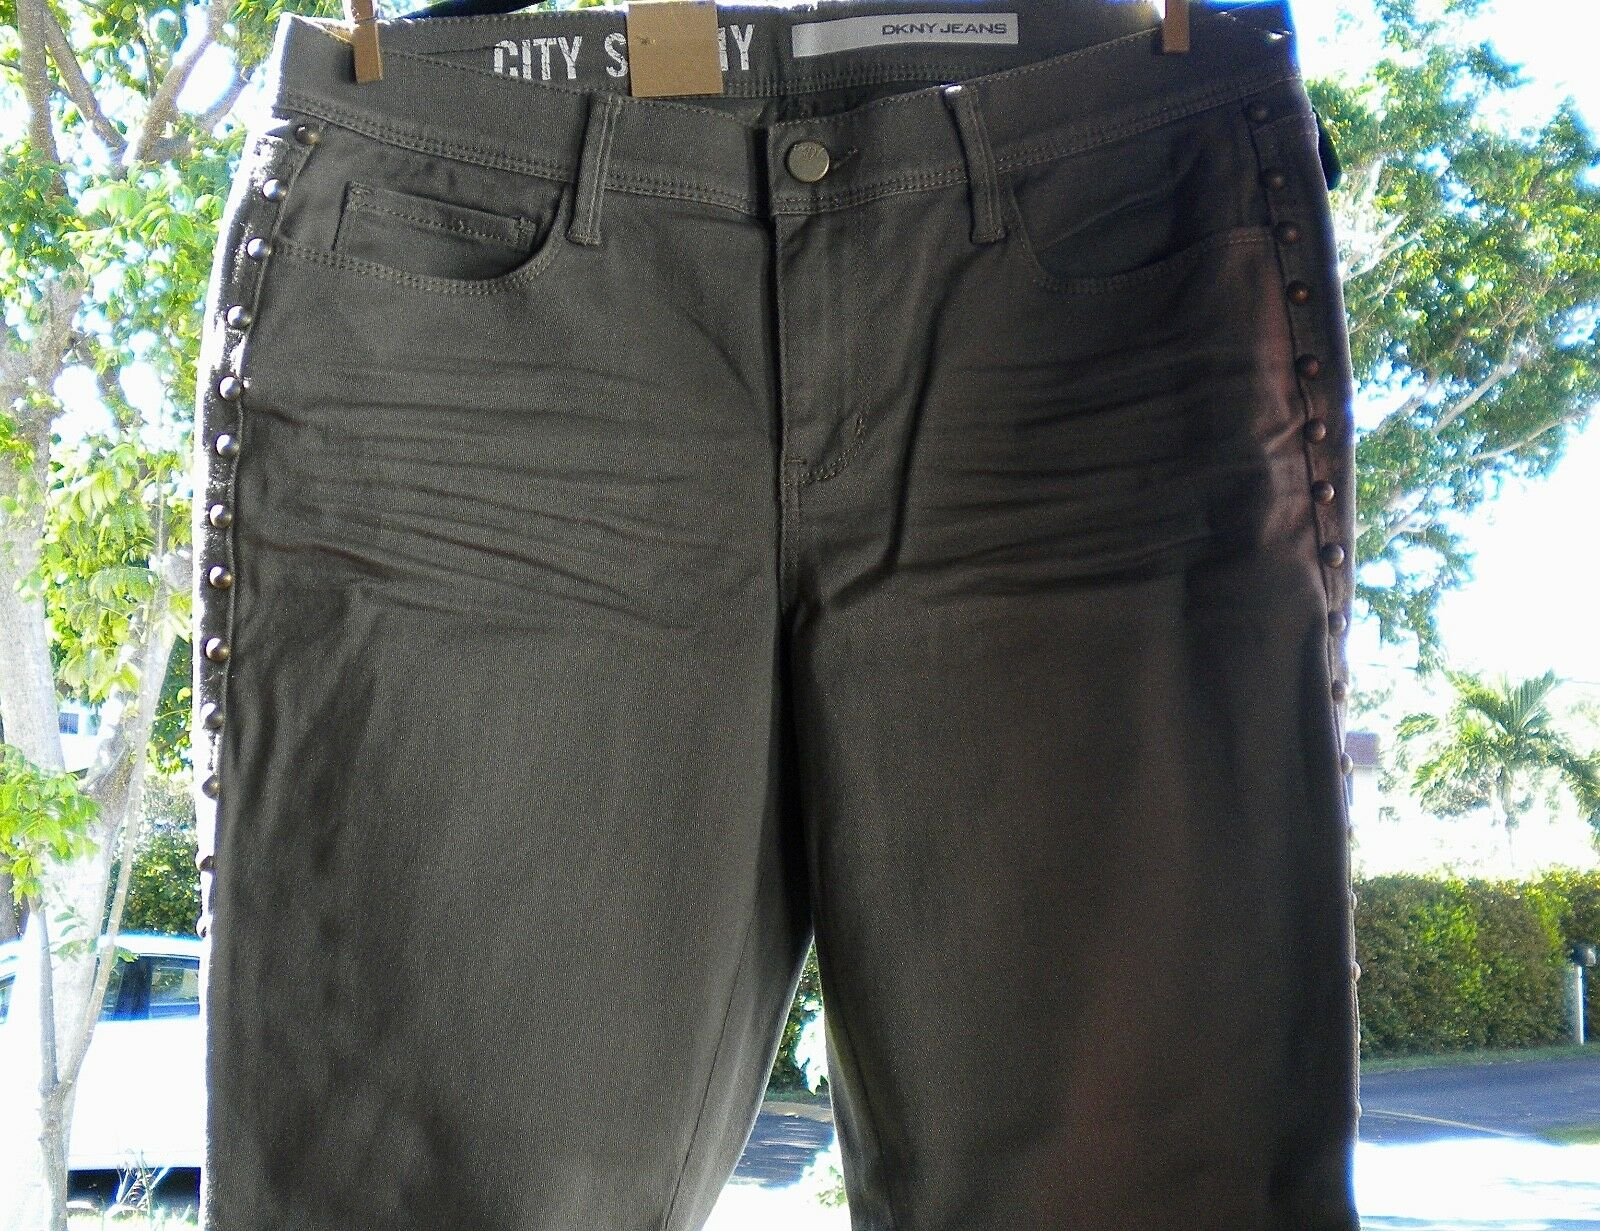 DKNY.Studs,Cottton Blend, Distress, Skinny Cropped, Military Jeans.U.S.10. 89.00